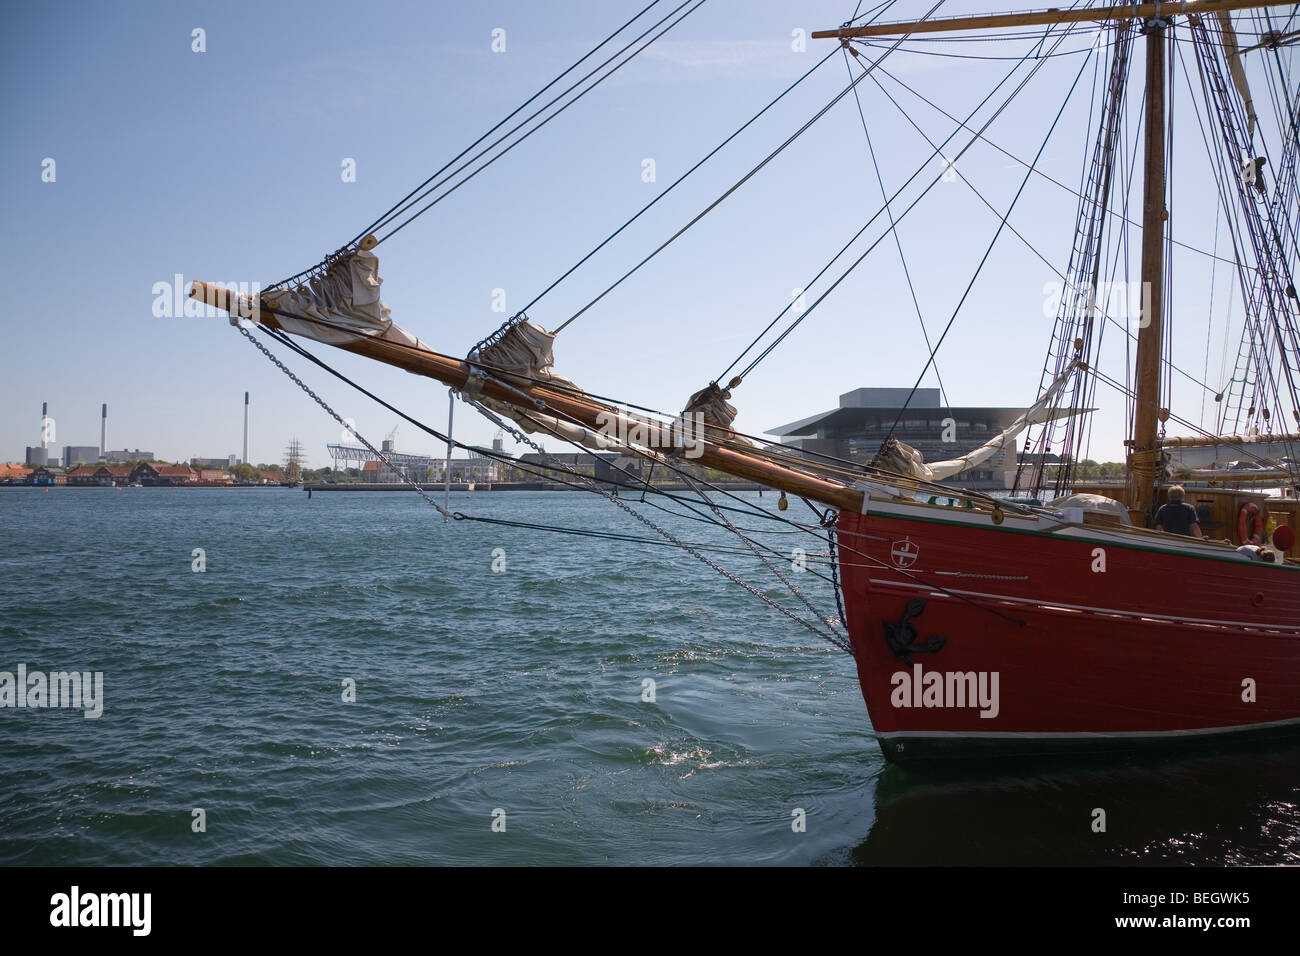 The sprit and bow of the 35 m topsail schooner 'Lilla Dan' leaving the port of Copenhagen with the Opera - Stock Image